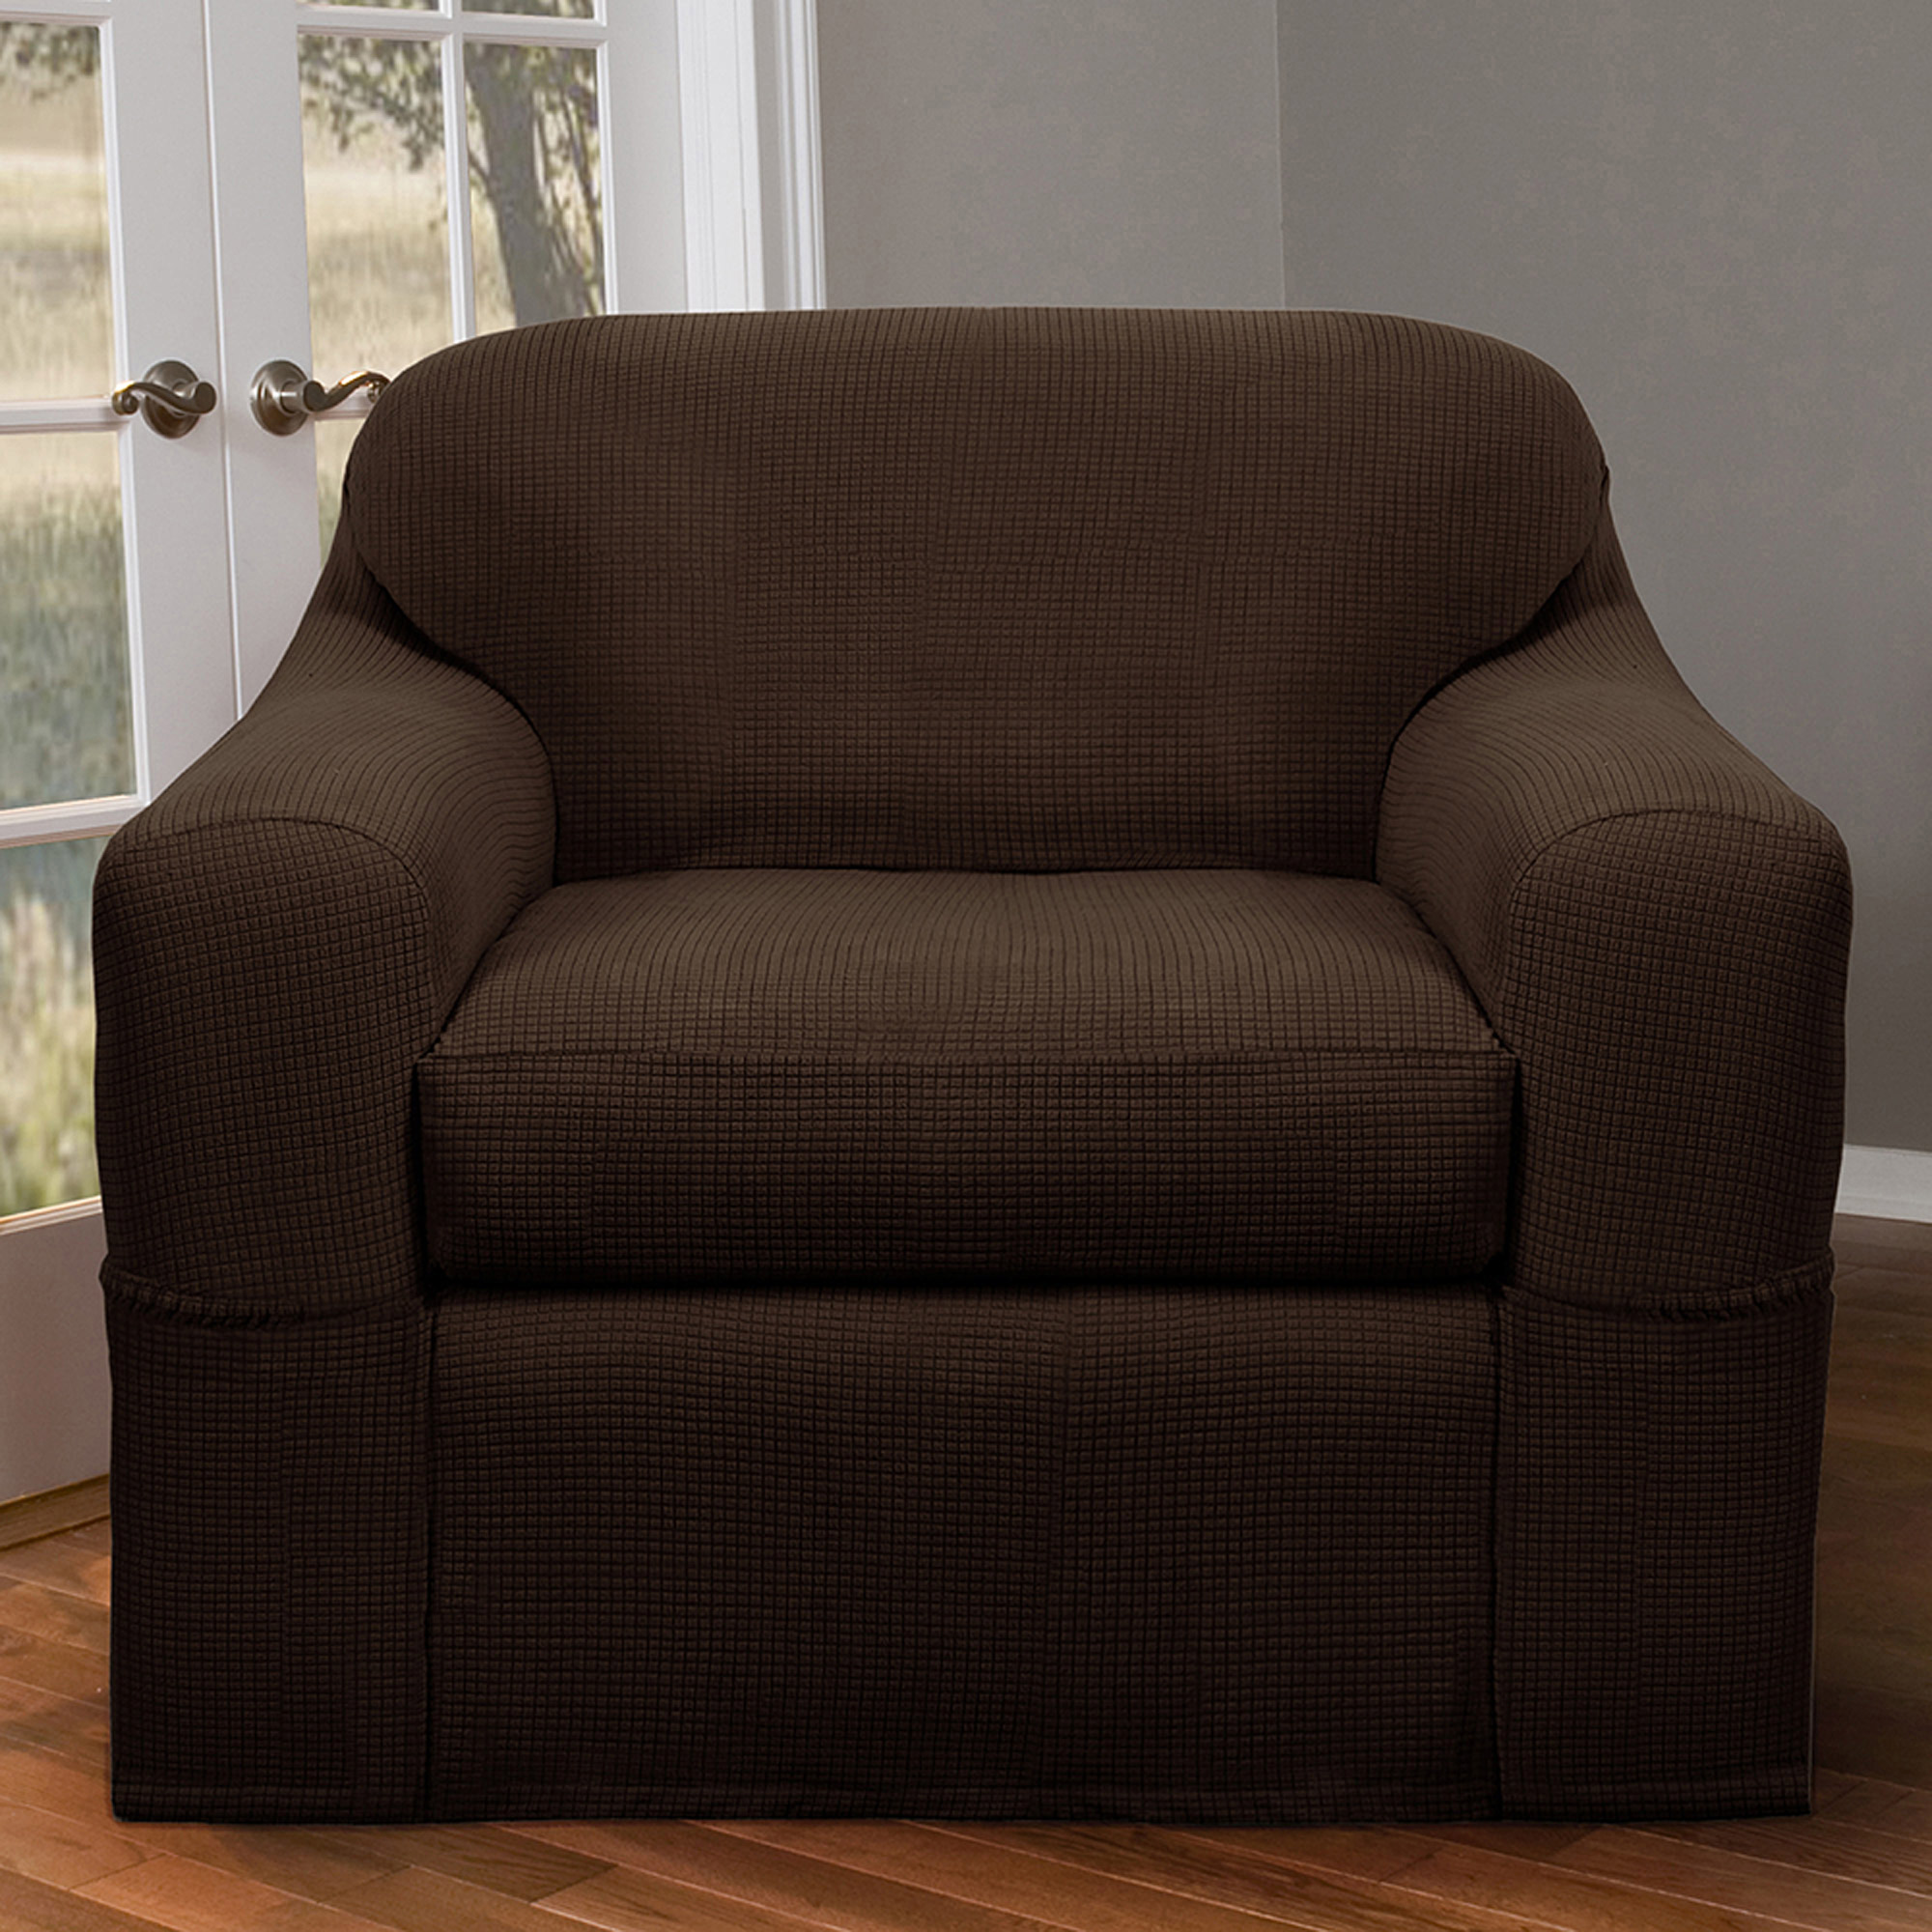 Maytex Reeves Stretch 2 Piece Chair Furniture Cover Slipcover